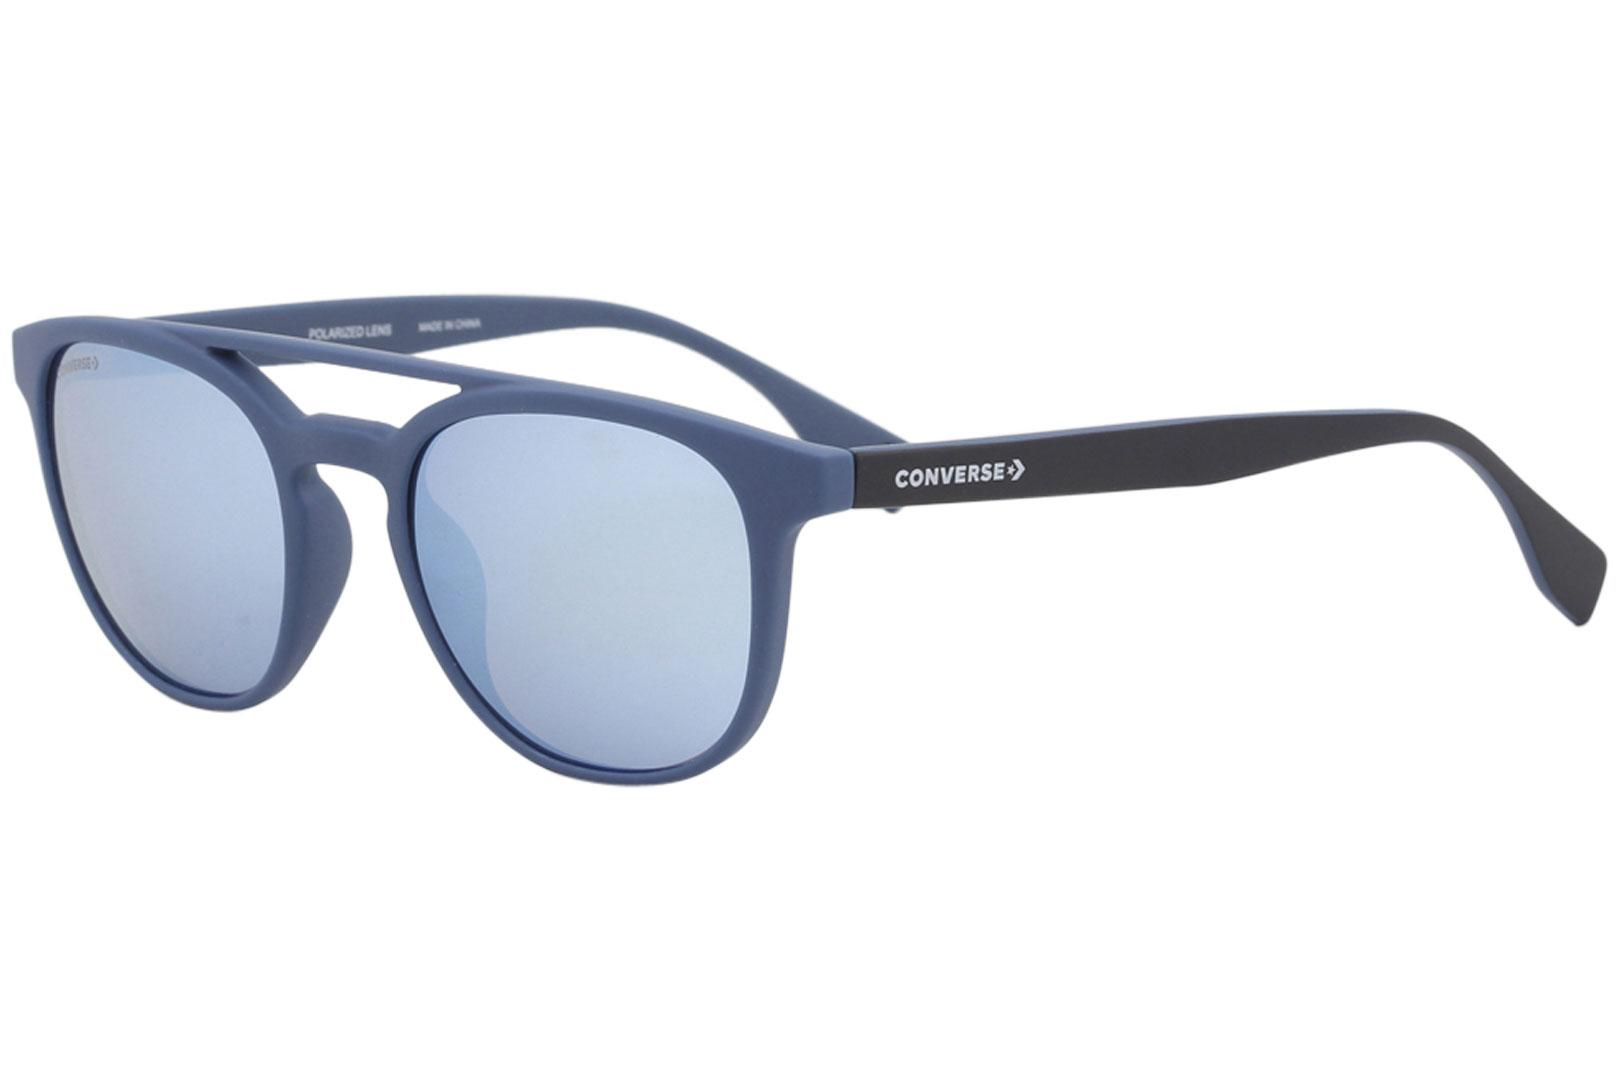 938ccceb80a ... Polarized Fashion Pilot Sunglasses by Converse. Touch to zoom